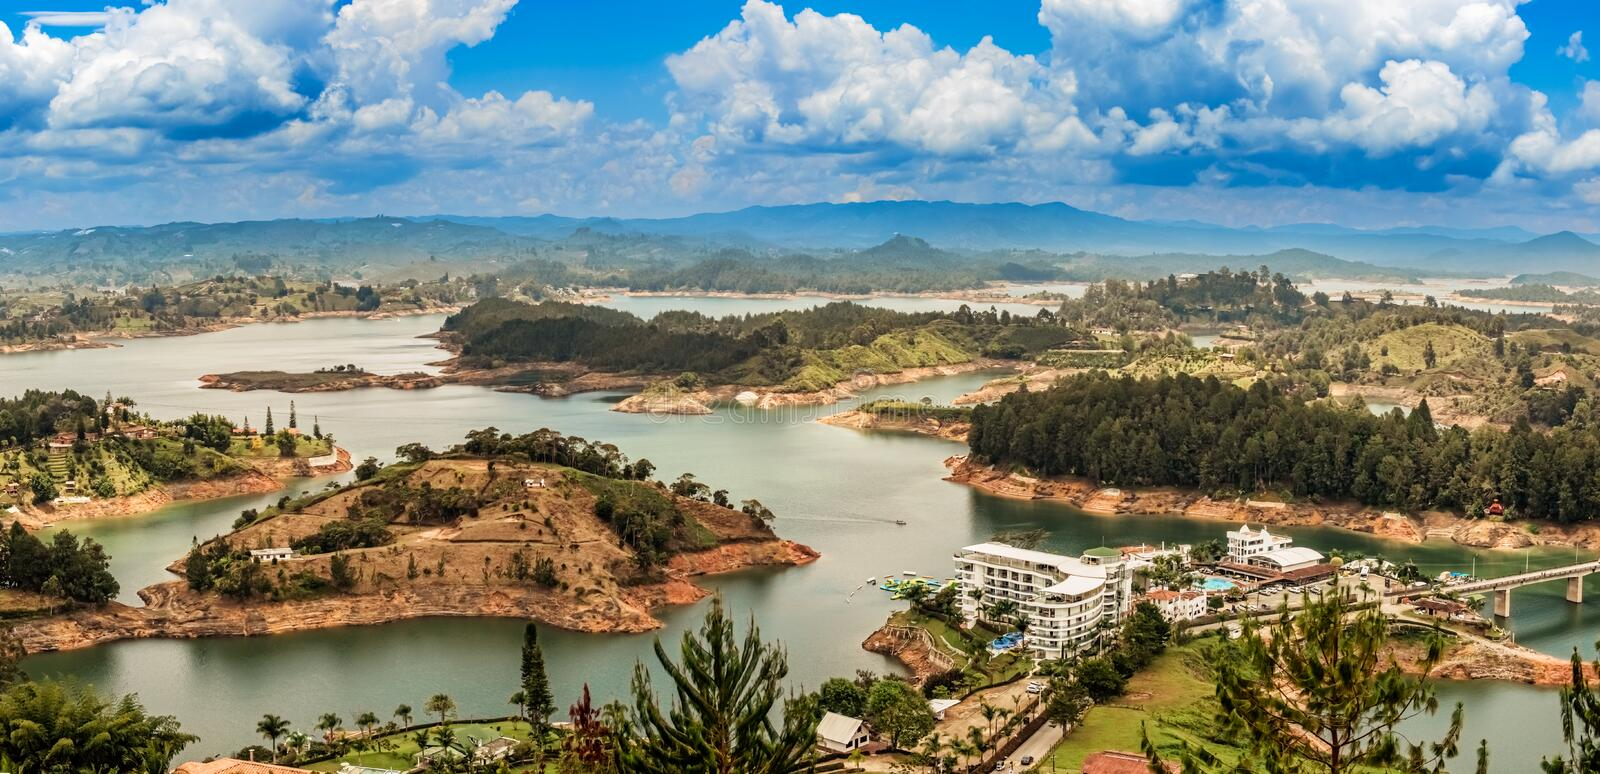 Aerial view of Guatape, Penol, dam lake in Colombia. Aerial view of Guatape, Penol, dam lake in Colombia as seen from the viewpoint at the top of The rock El royalty free stock images